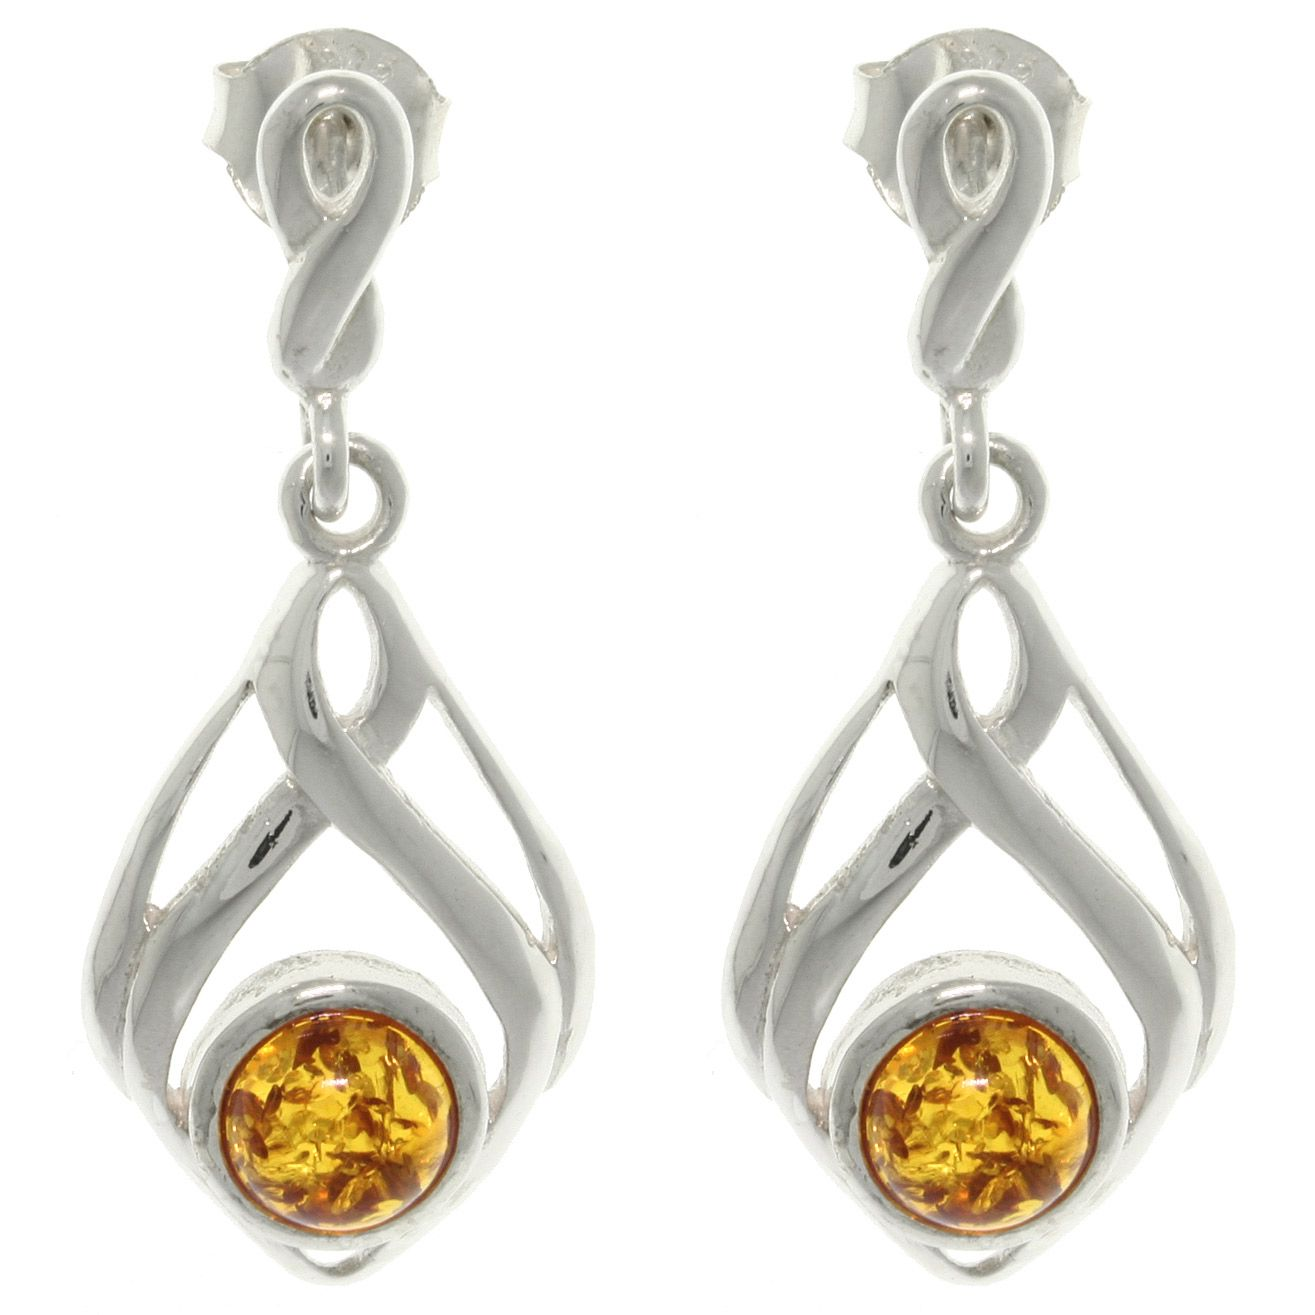 These gorgeous earrings showcase exquisite bezel-set Baltic amber gemstones. The uniquely designed earrings are crafted of highly polished .925 sterling silver and offer a unique, intertwining design that dangle under post backs with butterfly clasps.